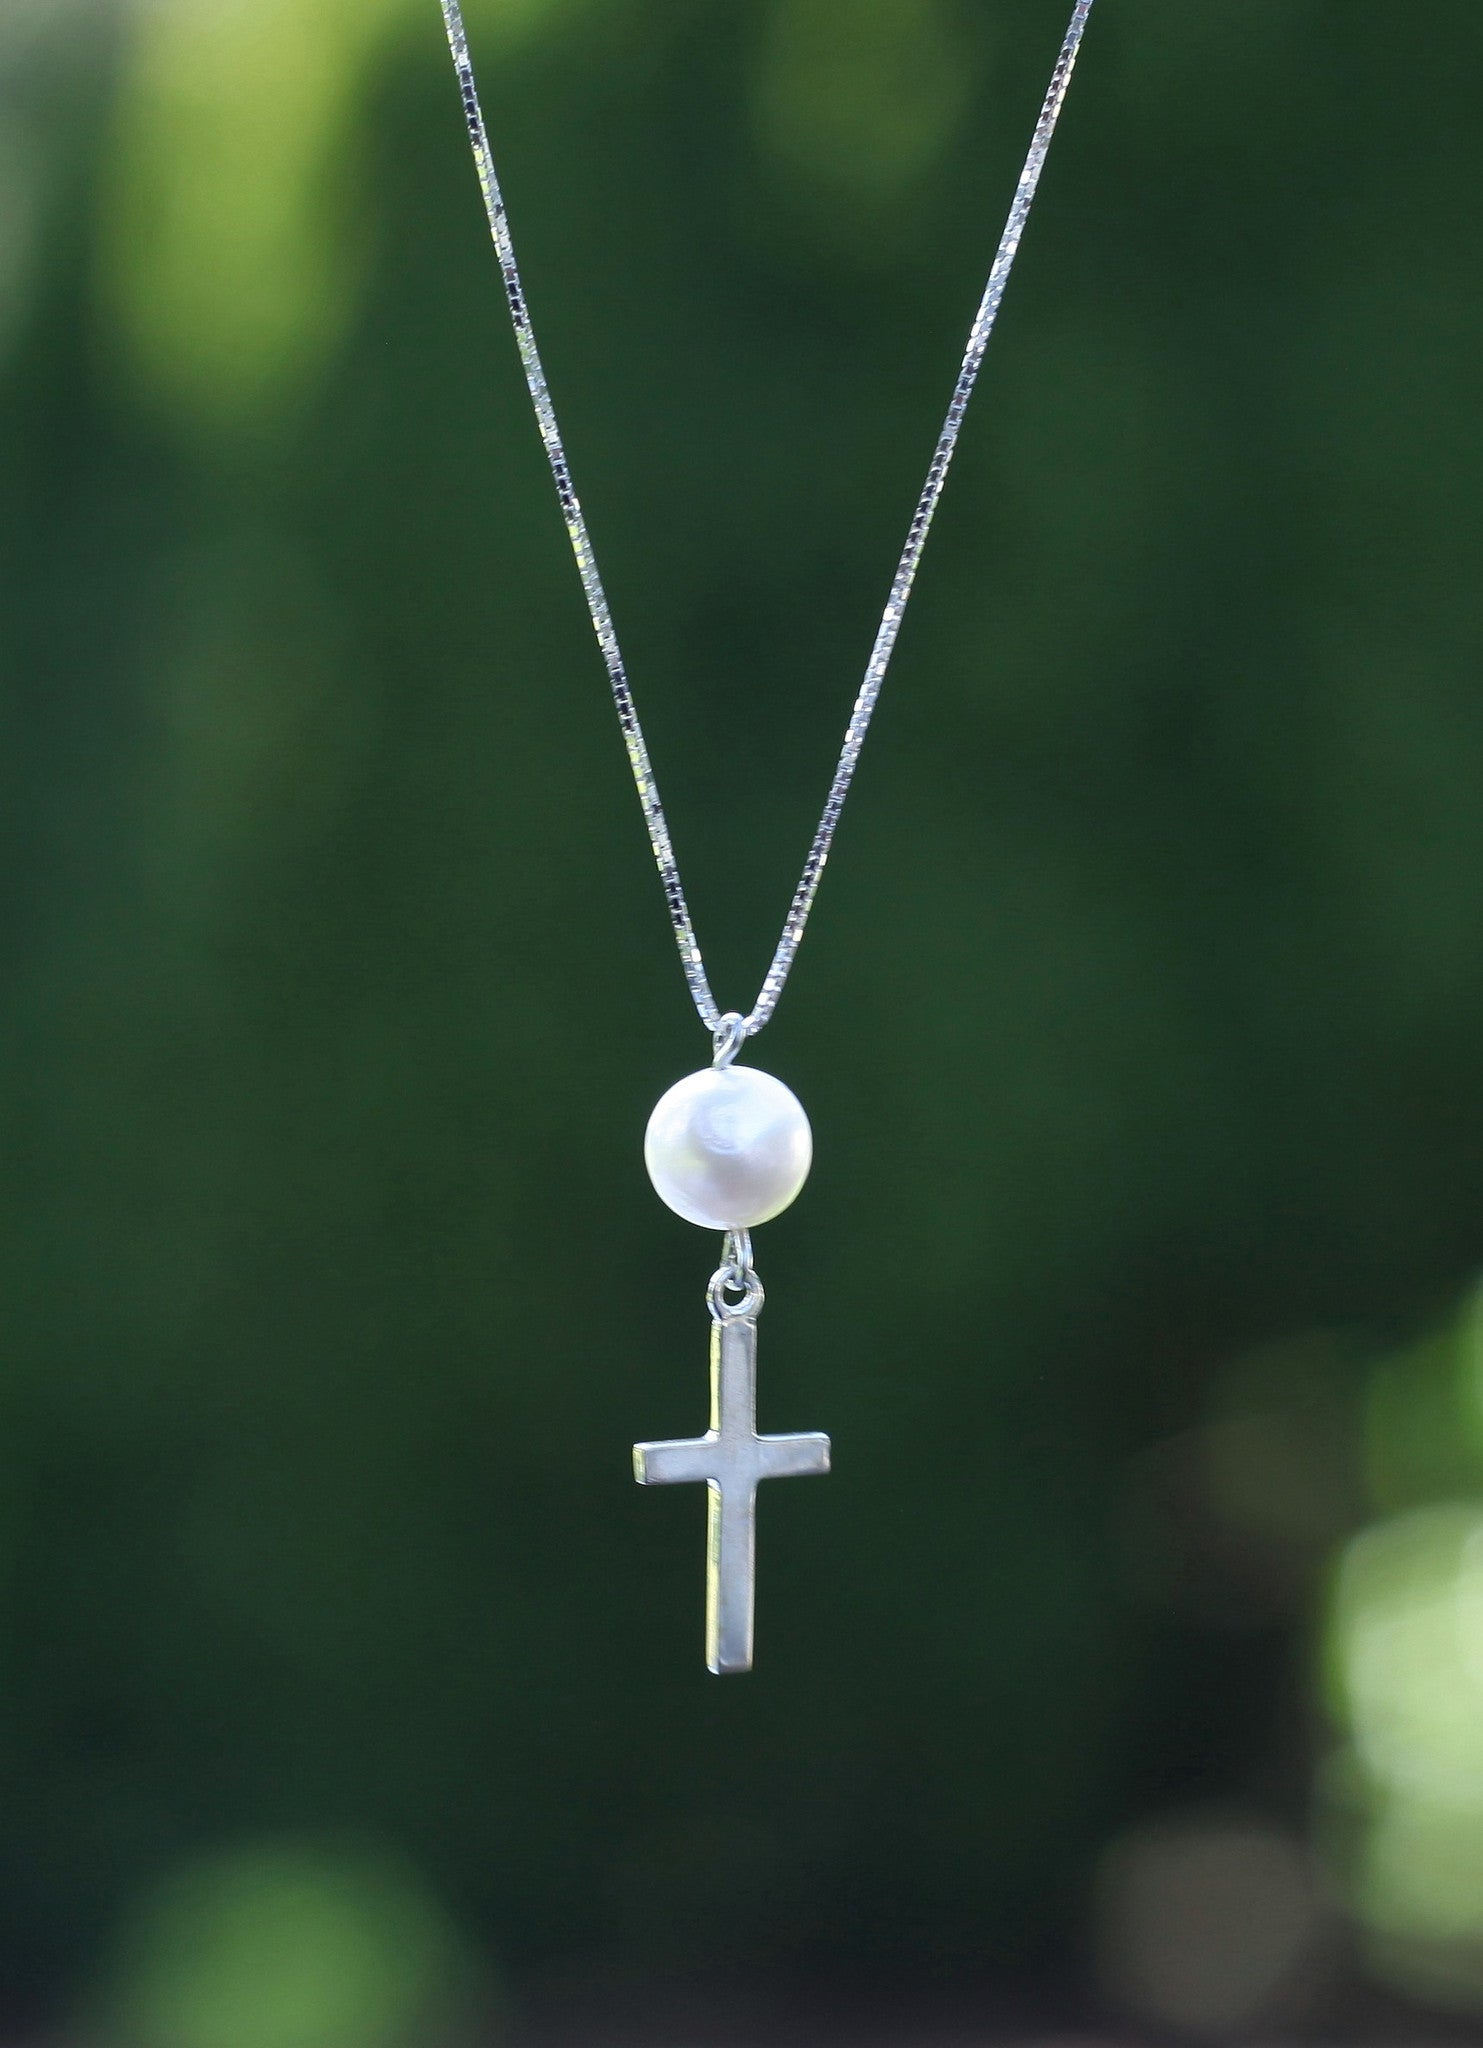 Sterling Silver Cross and Fresh Water Pearl Necklace - Limited Edition